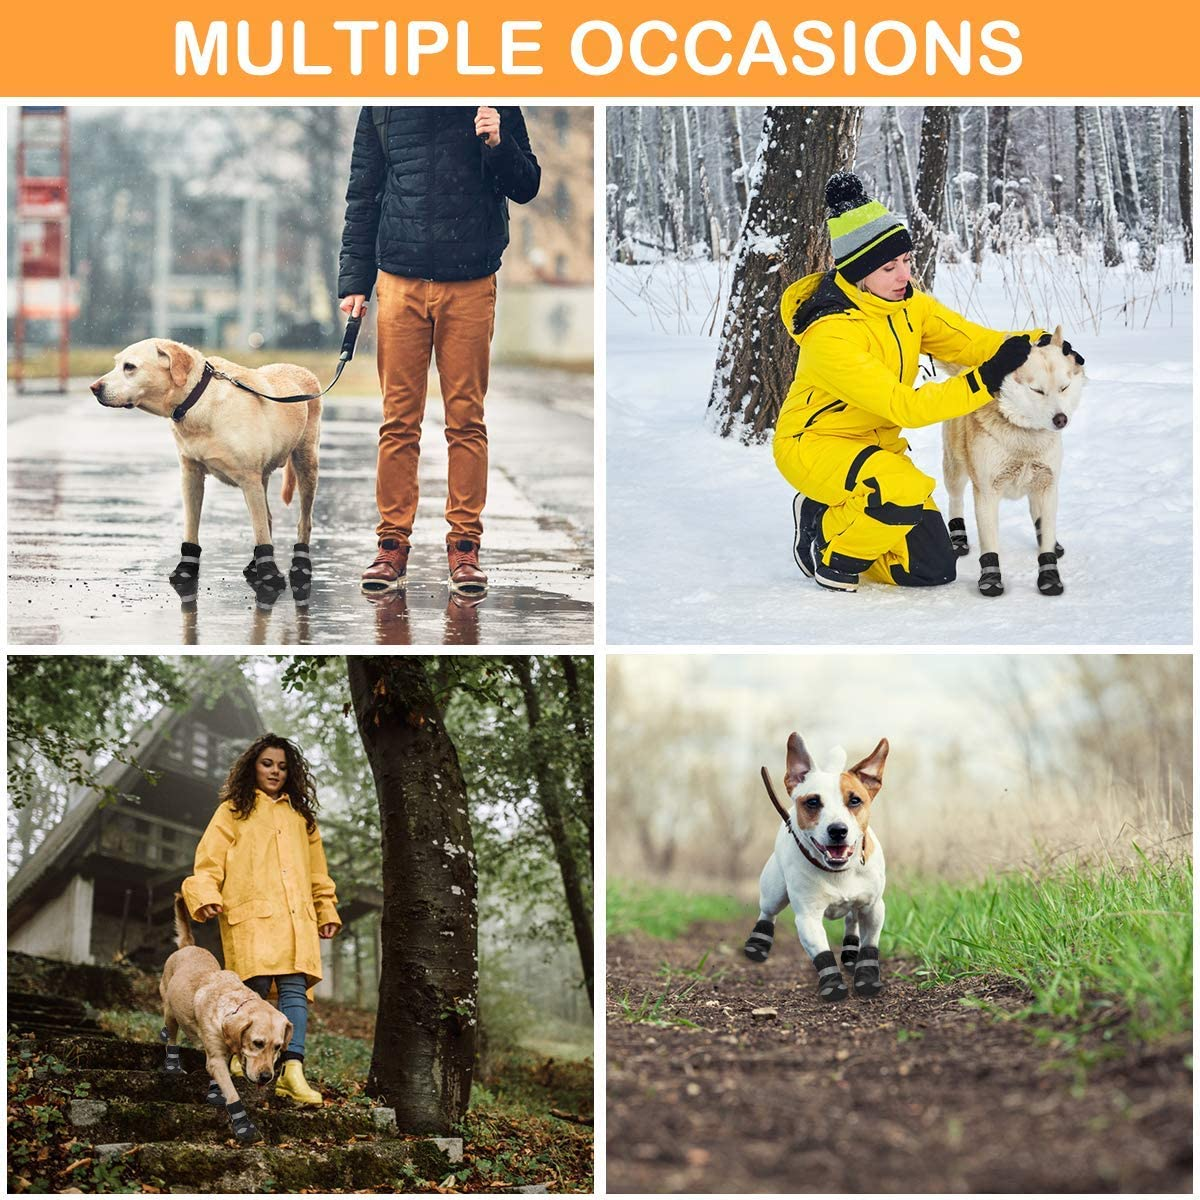 Dog Shoes Protective for Large Medium Pet Dog Socks 4PCS Anti-Slip Dog Boots Sole Paw Protector with Reflective Straps Wear-resistant Dogs Booties Sports Walking Outdoor Orange 4#